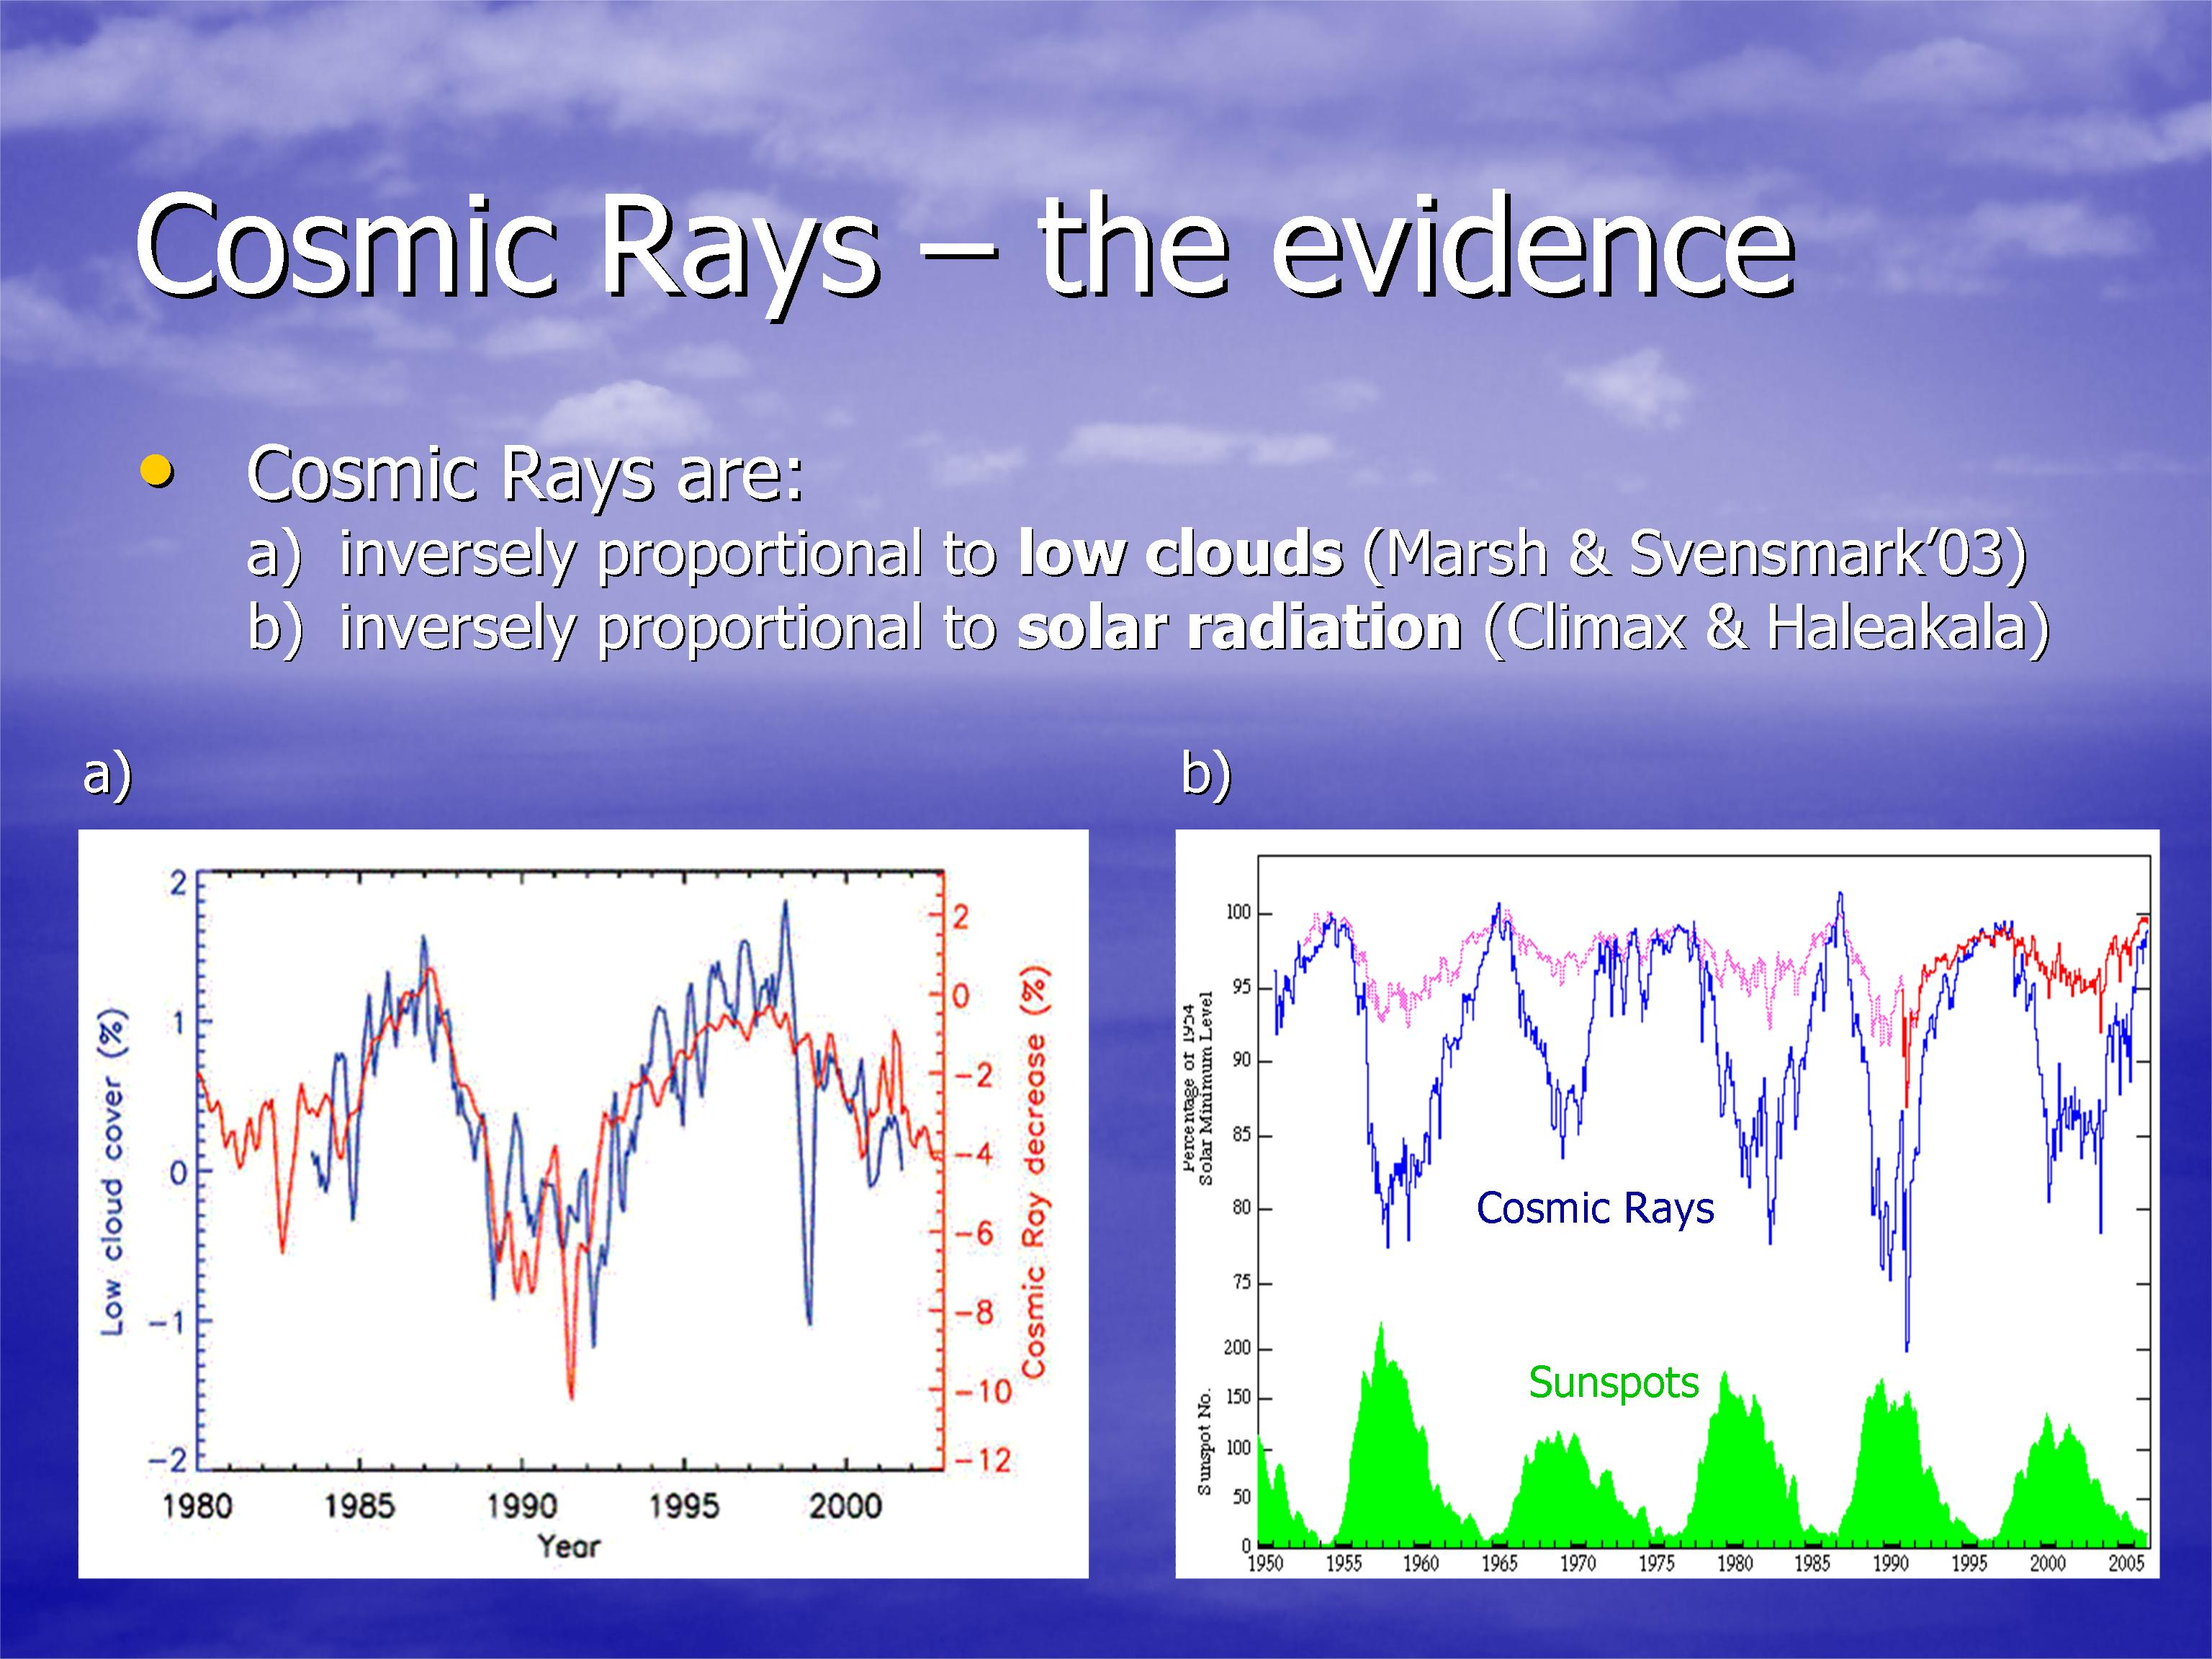 Global Warming - Cosmic Ray effect on Sunspots Evidence